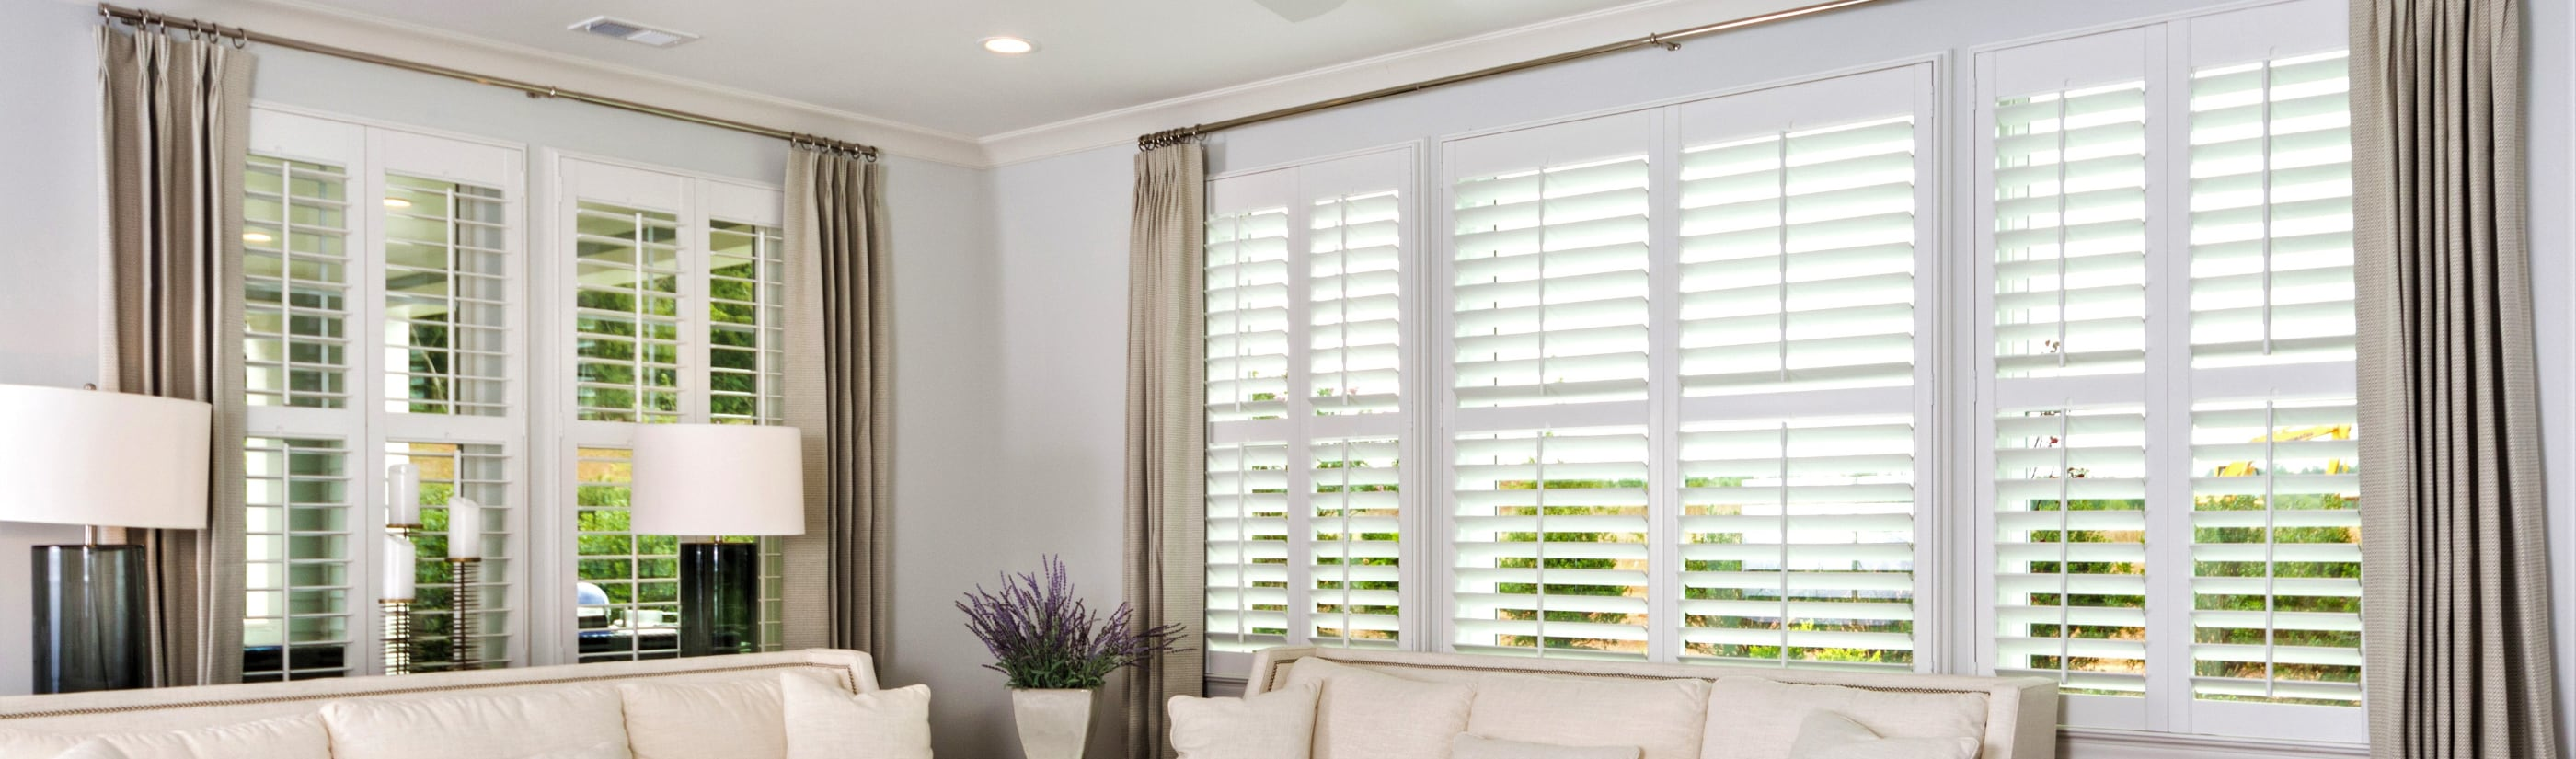 Polywood Shutters Paints In Dallas